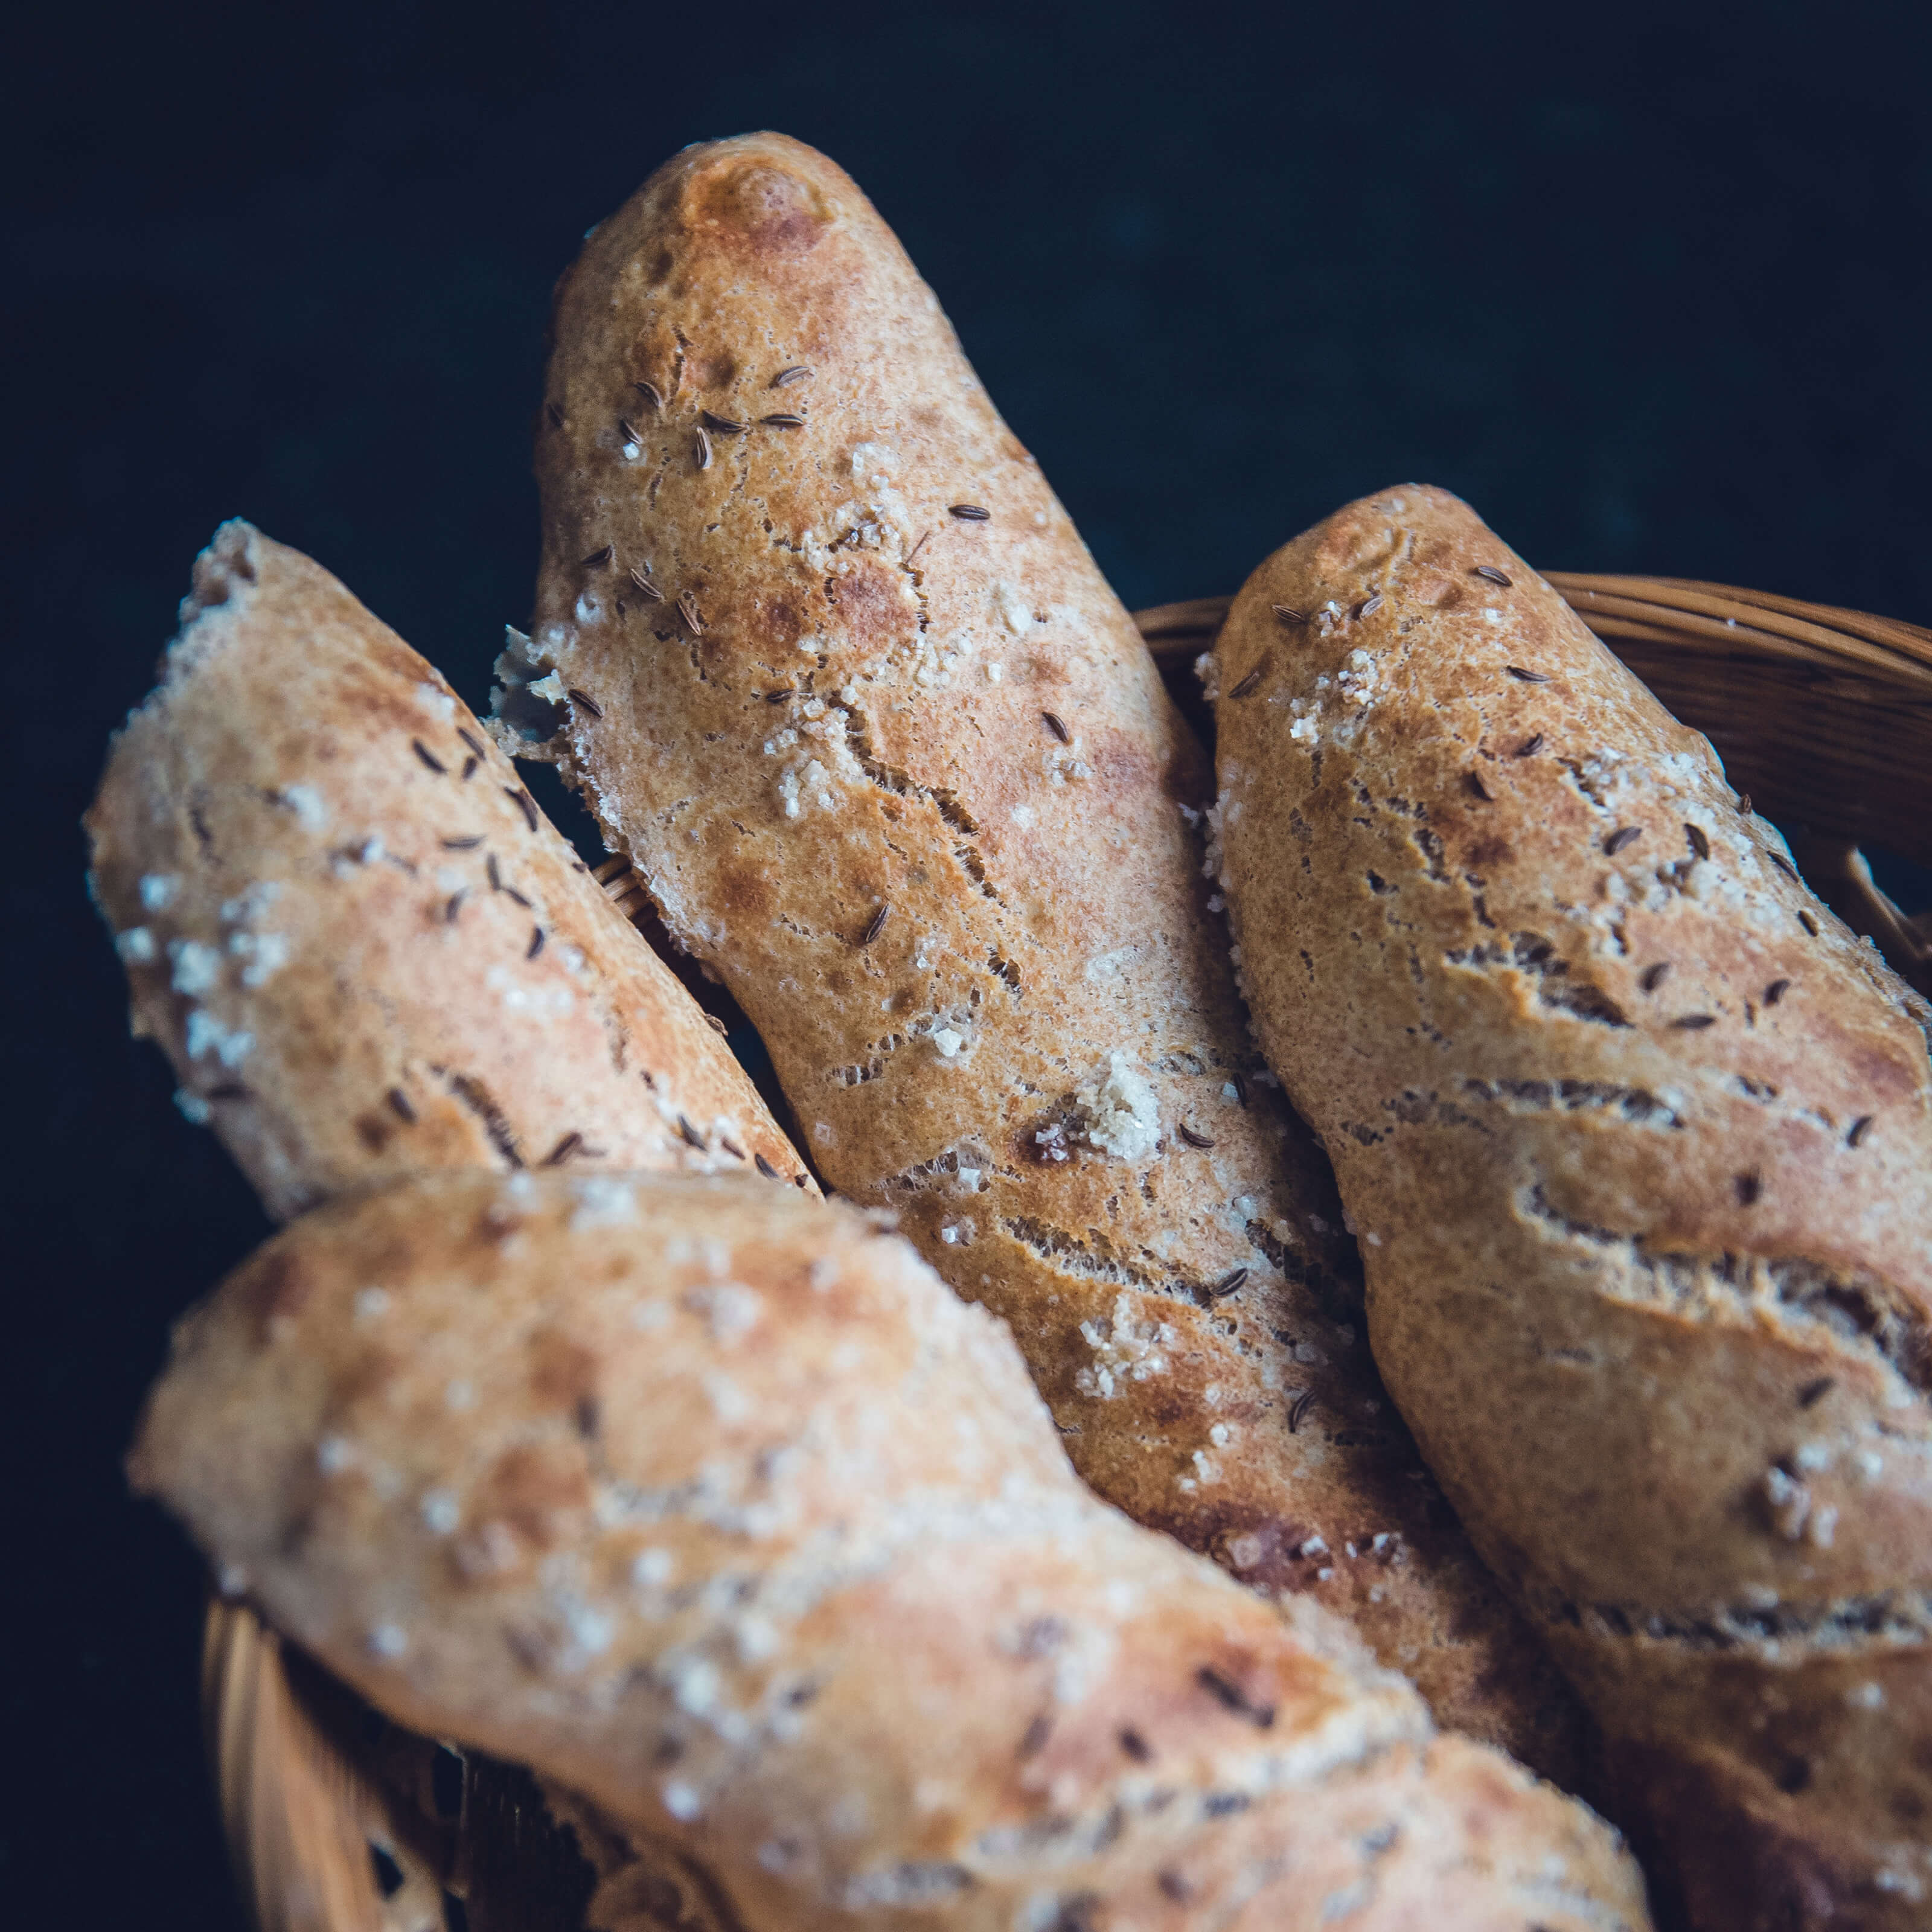 Why European Bread Might Be Better for Your Stomach